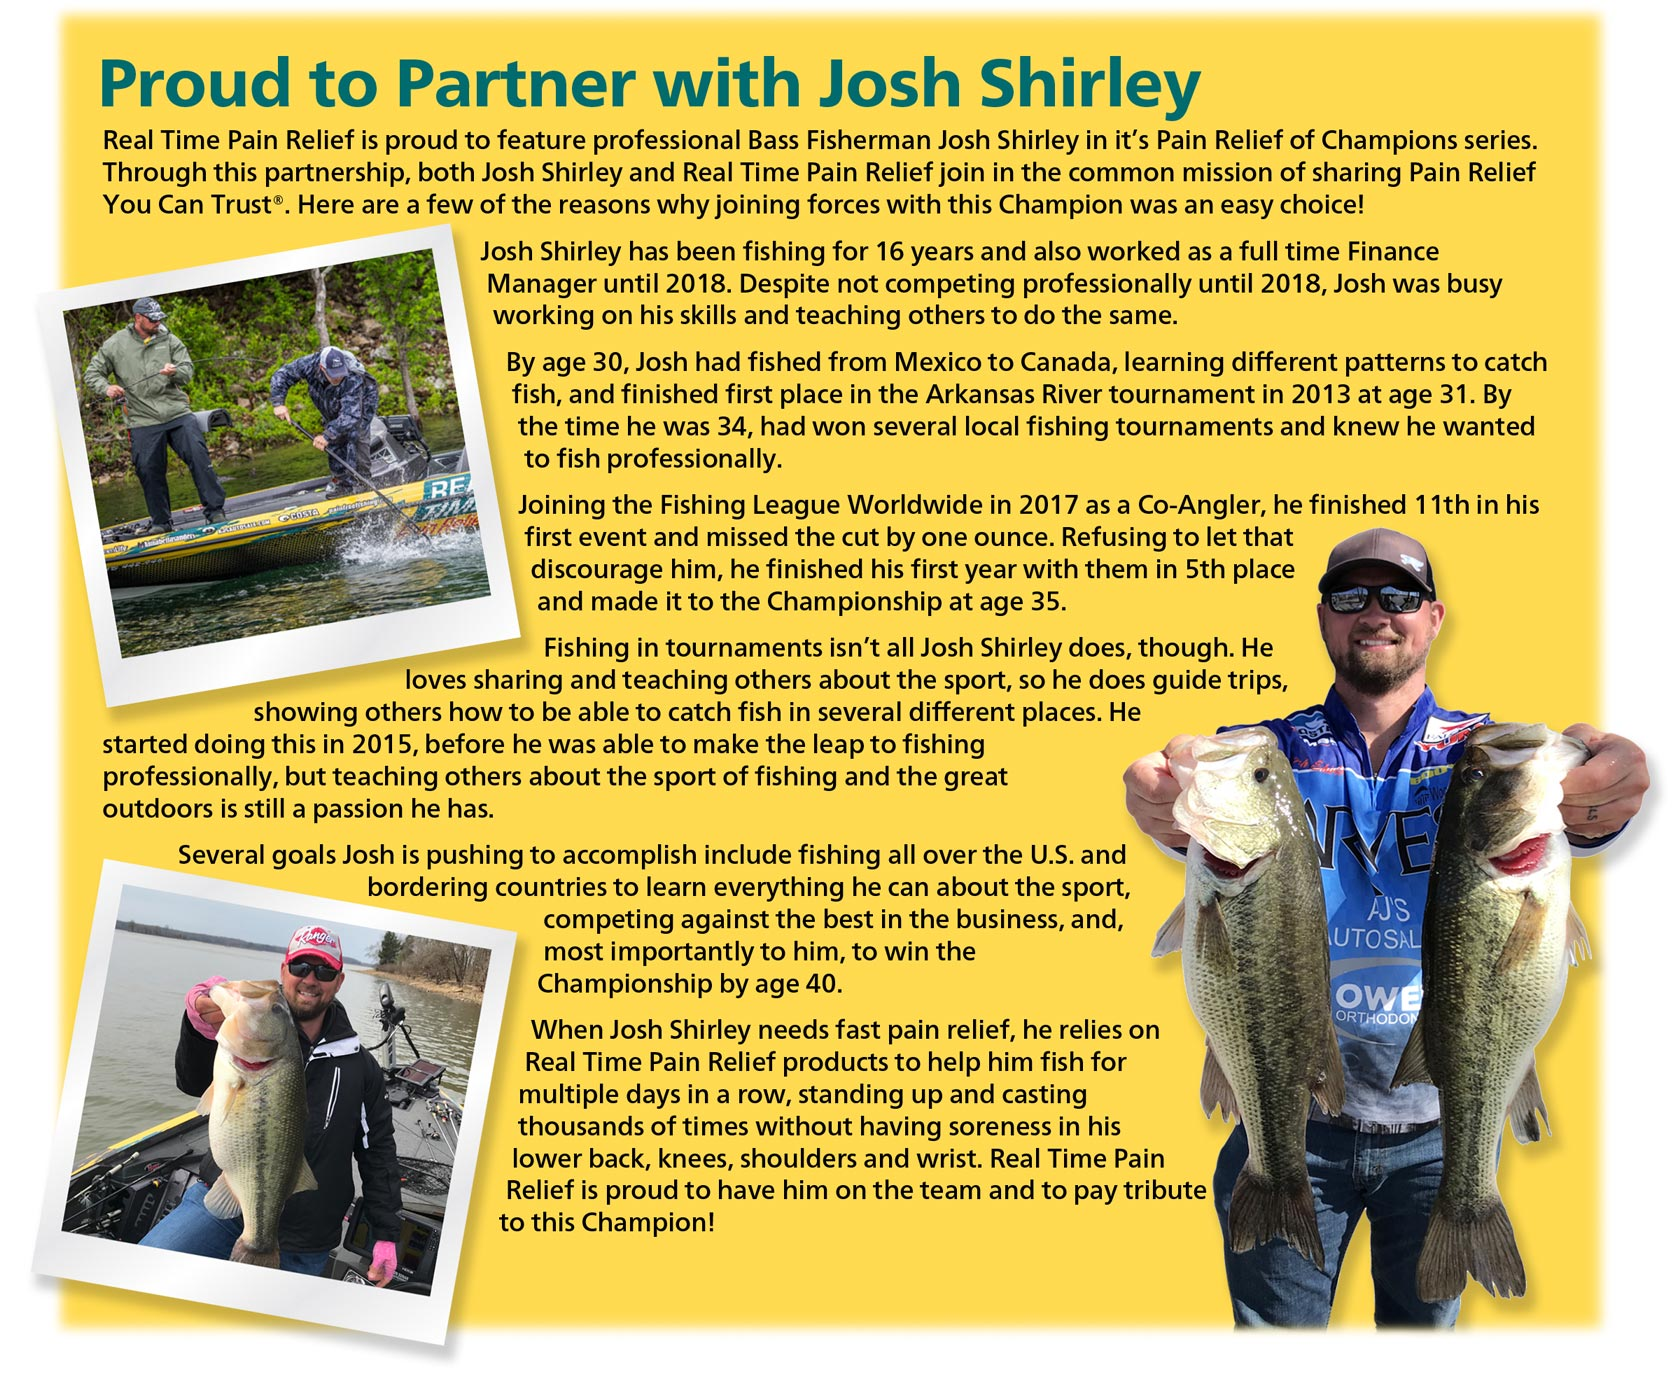 Professional Bass Fisherman Josh Shirley joined the Fishing League Worldwide in 2017 as a Co-Angler, he finished 11th in his first event and missed the cut by one ounce. Refusing to let that discourage him, he finished his first year with them in 5th place and made it to the Championship at age 35.